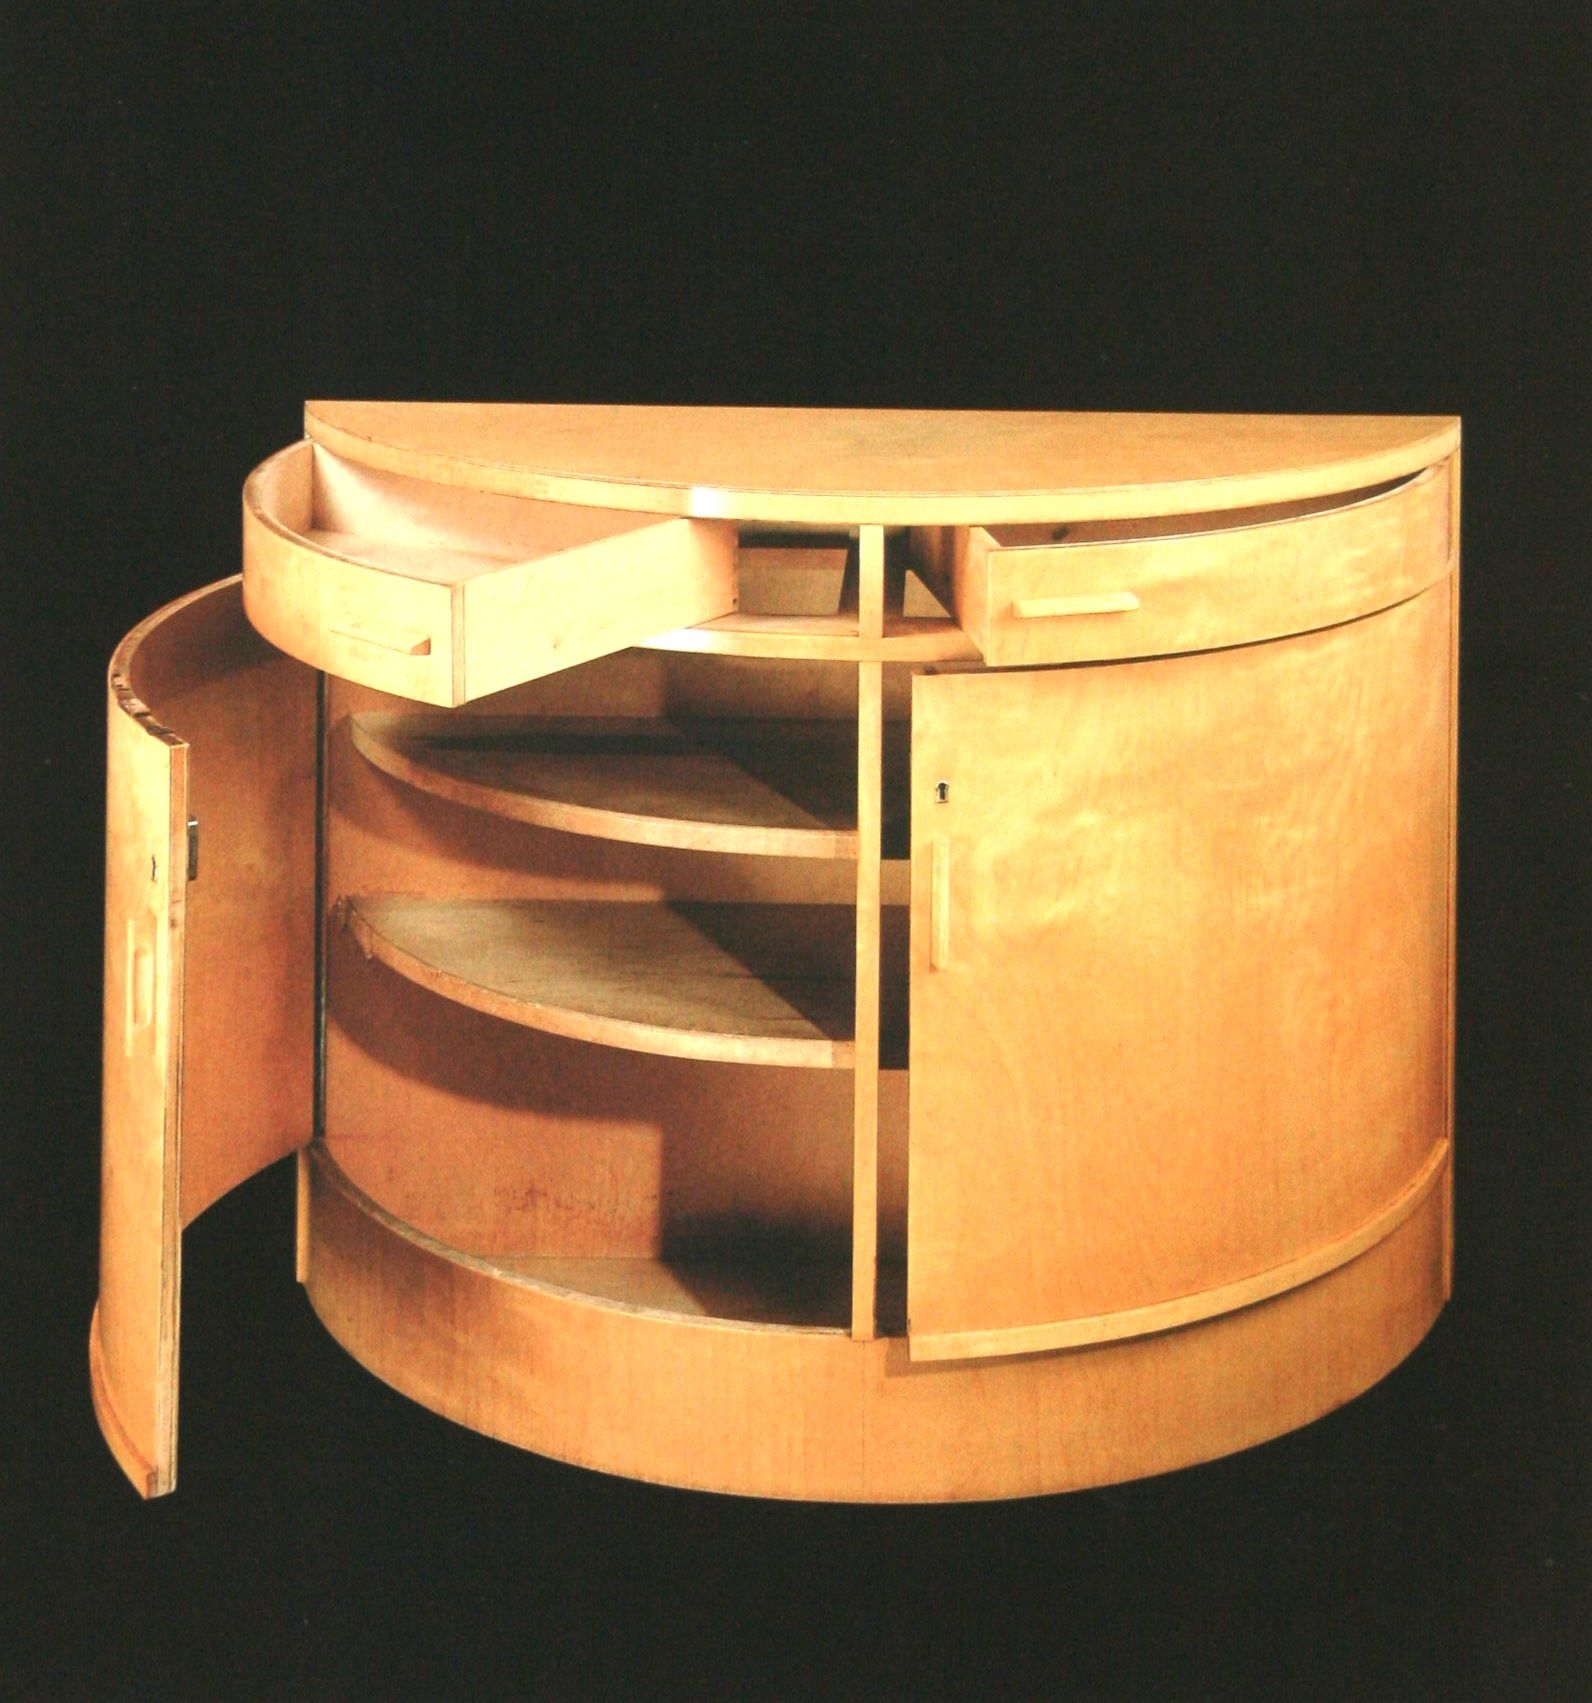 Alvar aalto rounded cupboard in birch after 1935 alvar for Alvar aalto muebles